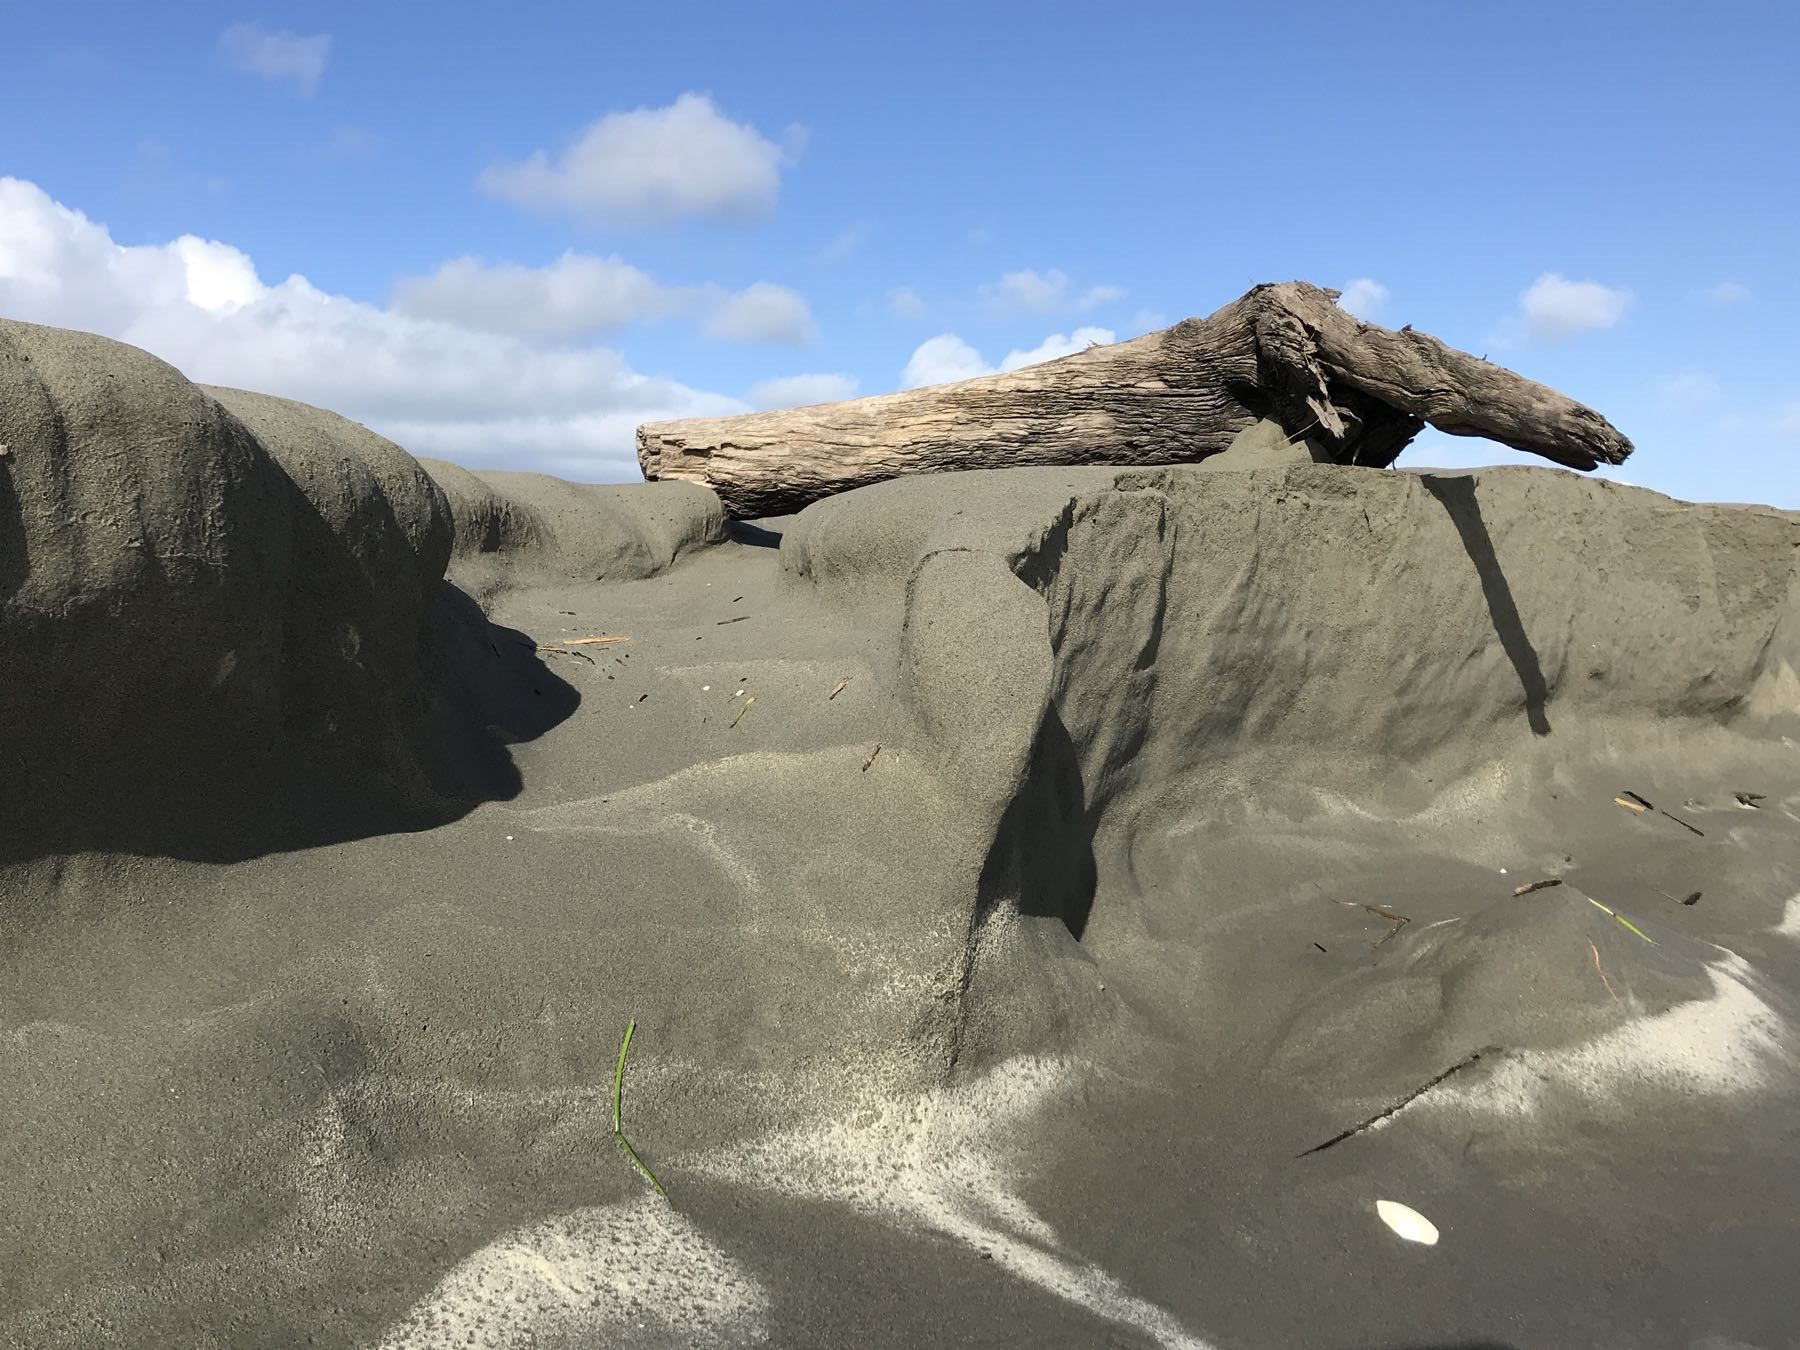 Sand cliff with log on top.